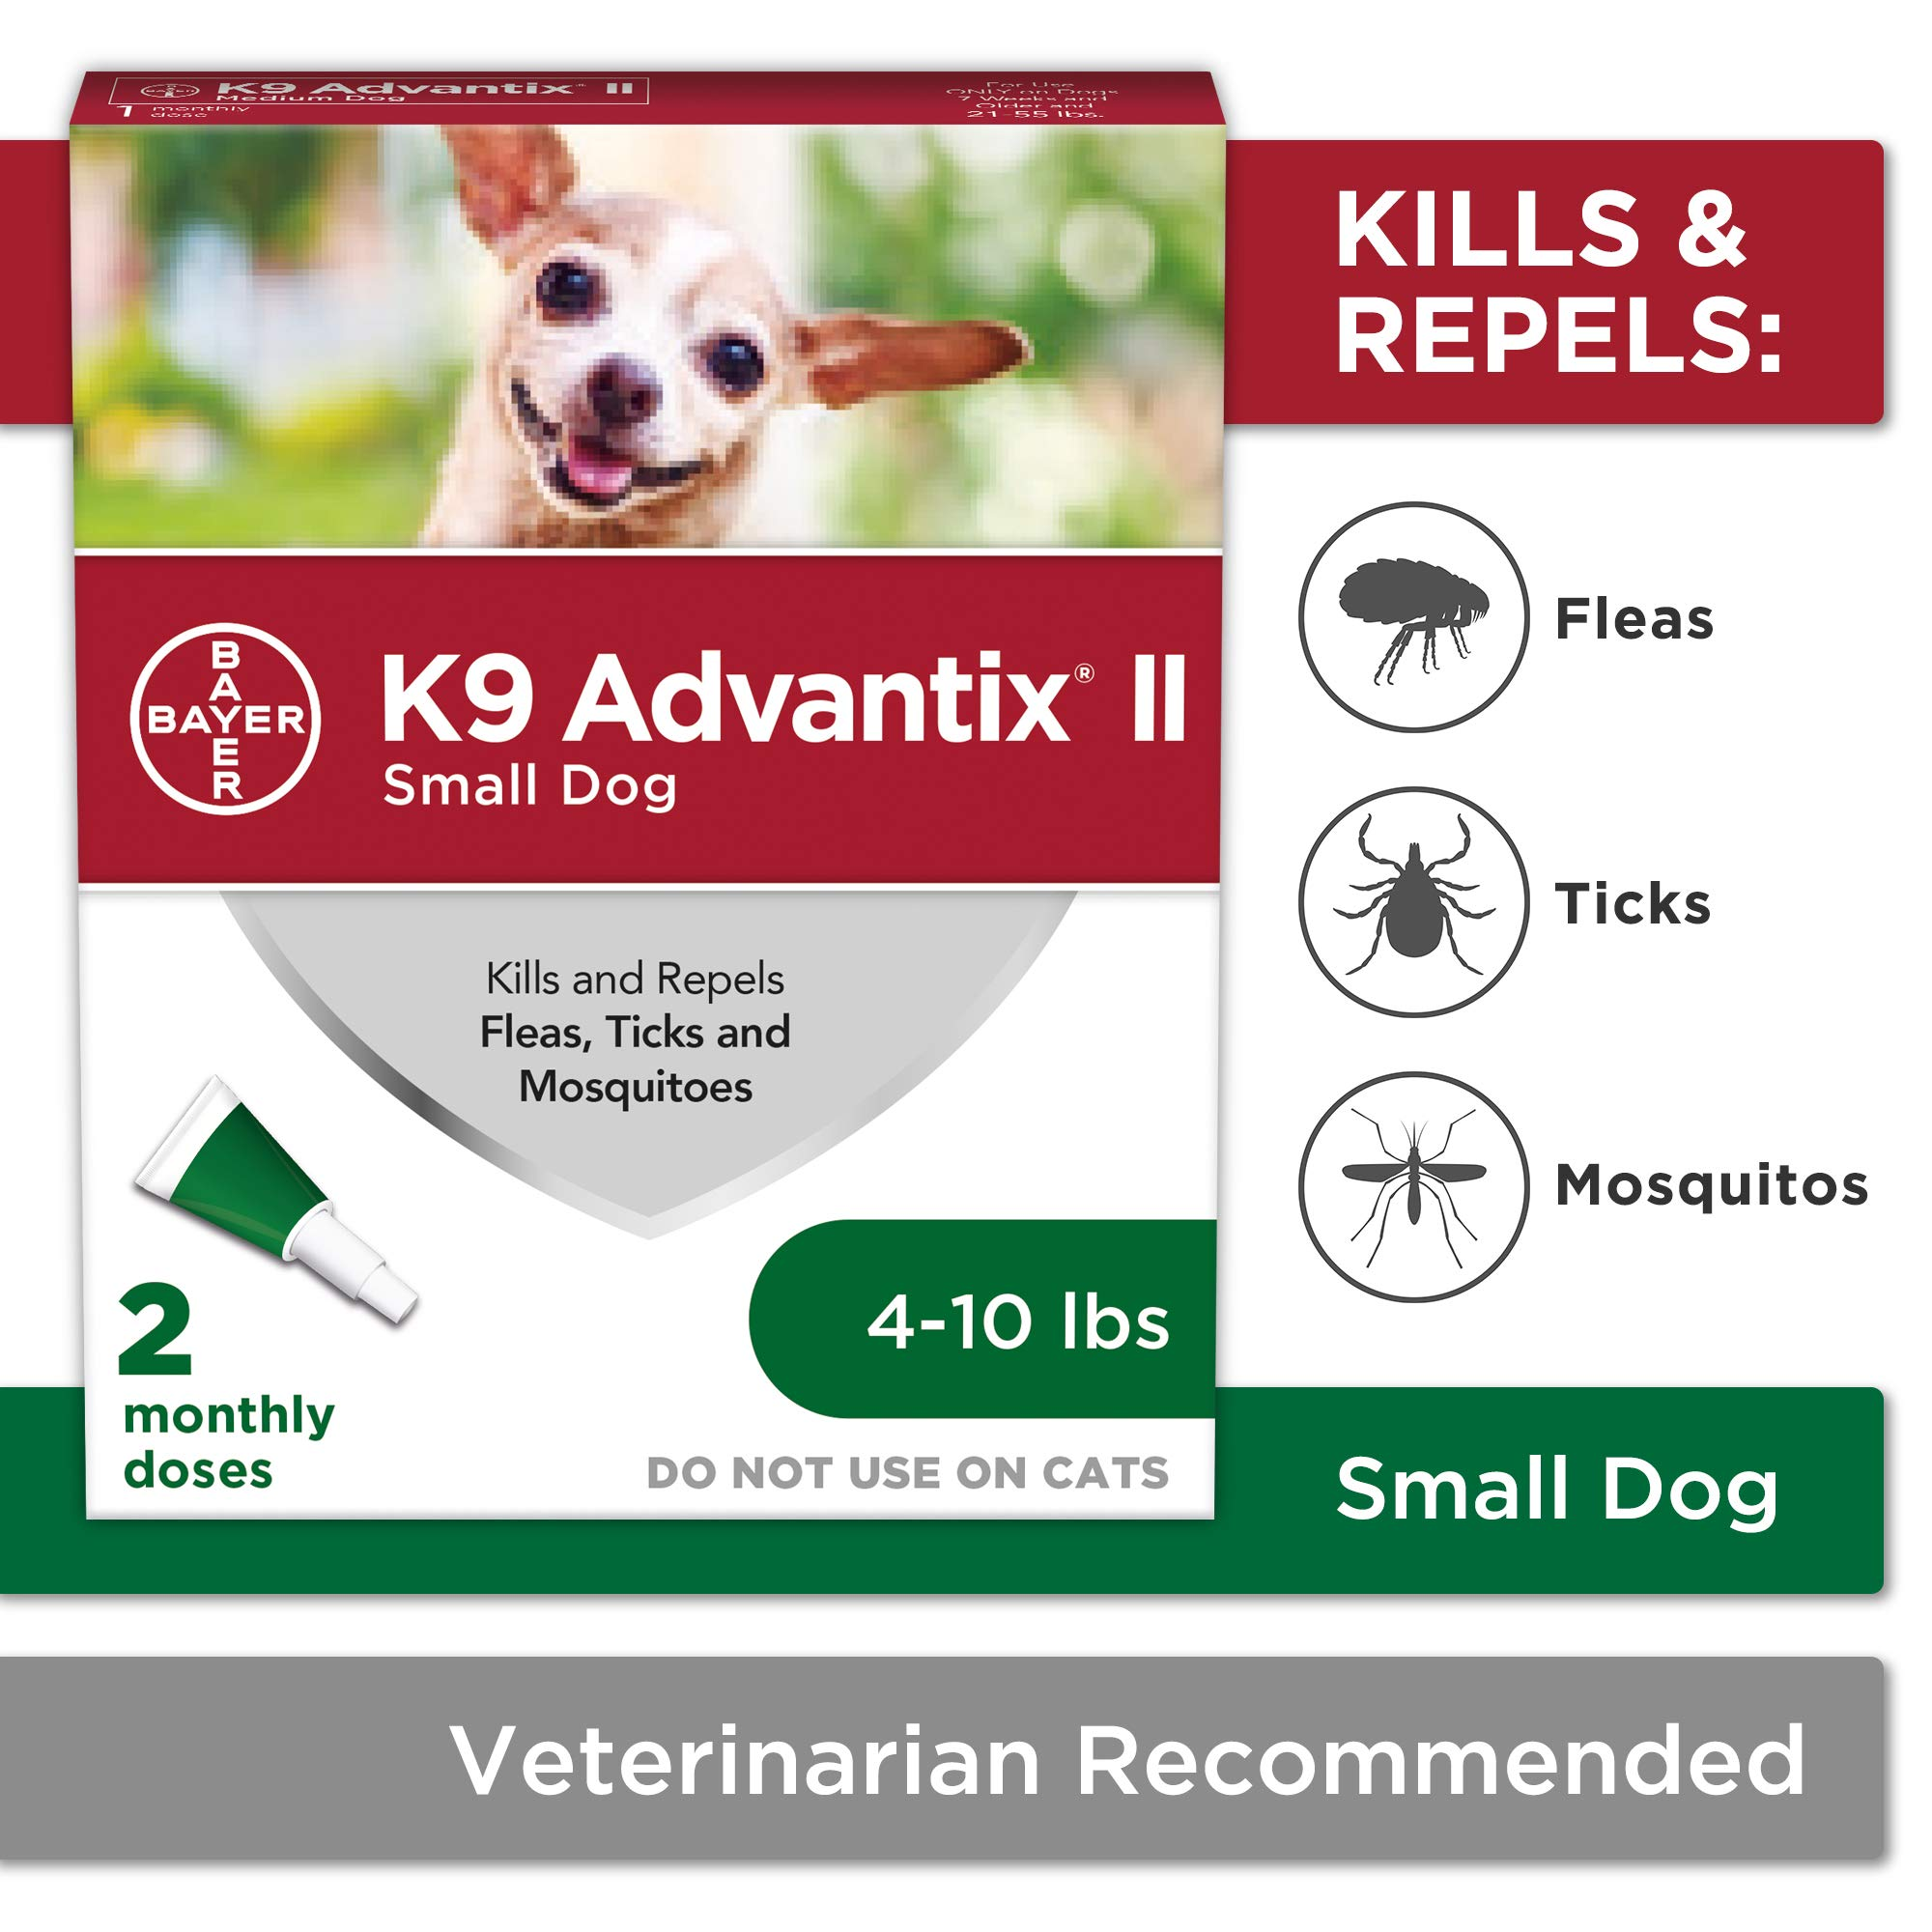 Bayer K9 Advantix II Flea, Tick and Mosquito Prevention for Small Dogs, 4 - 10 lb, 2 doses by Bayer Animal Health